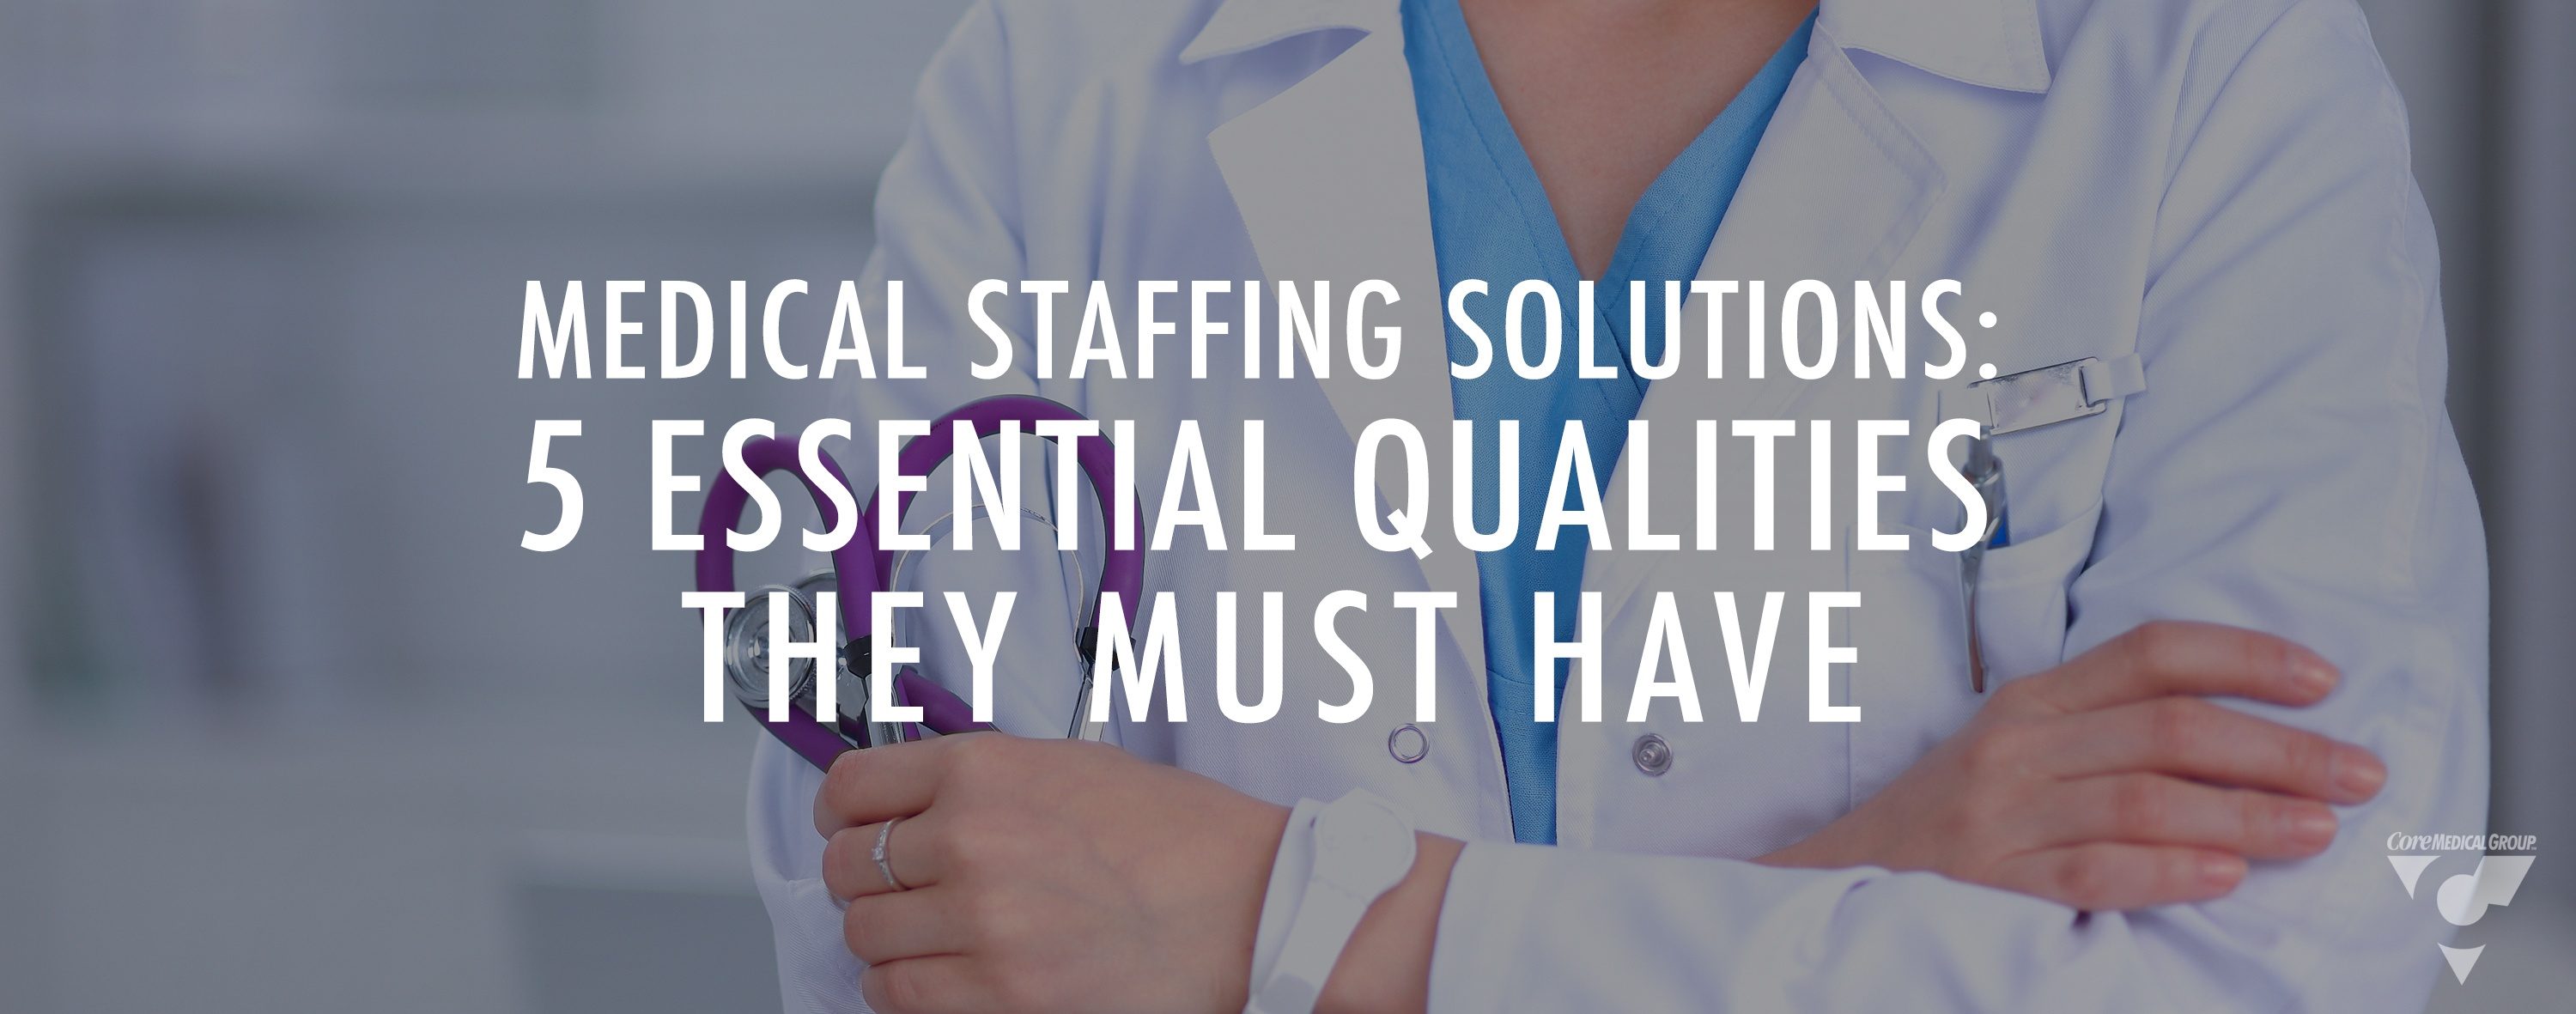 Medical Staffing Solutions: 5 Essential Qualities They Must Have